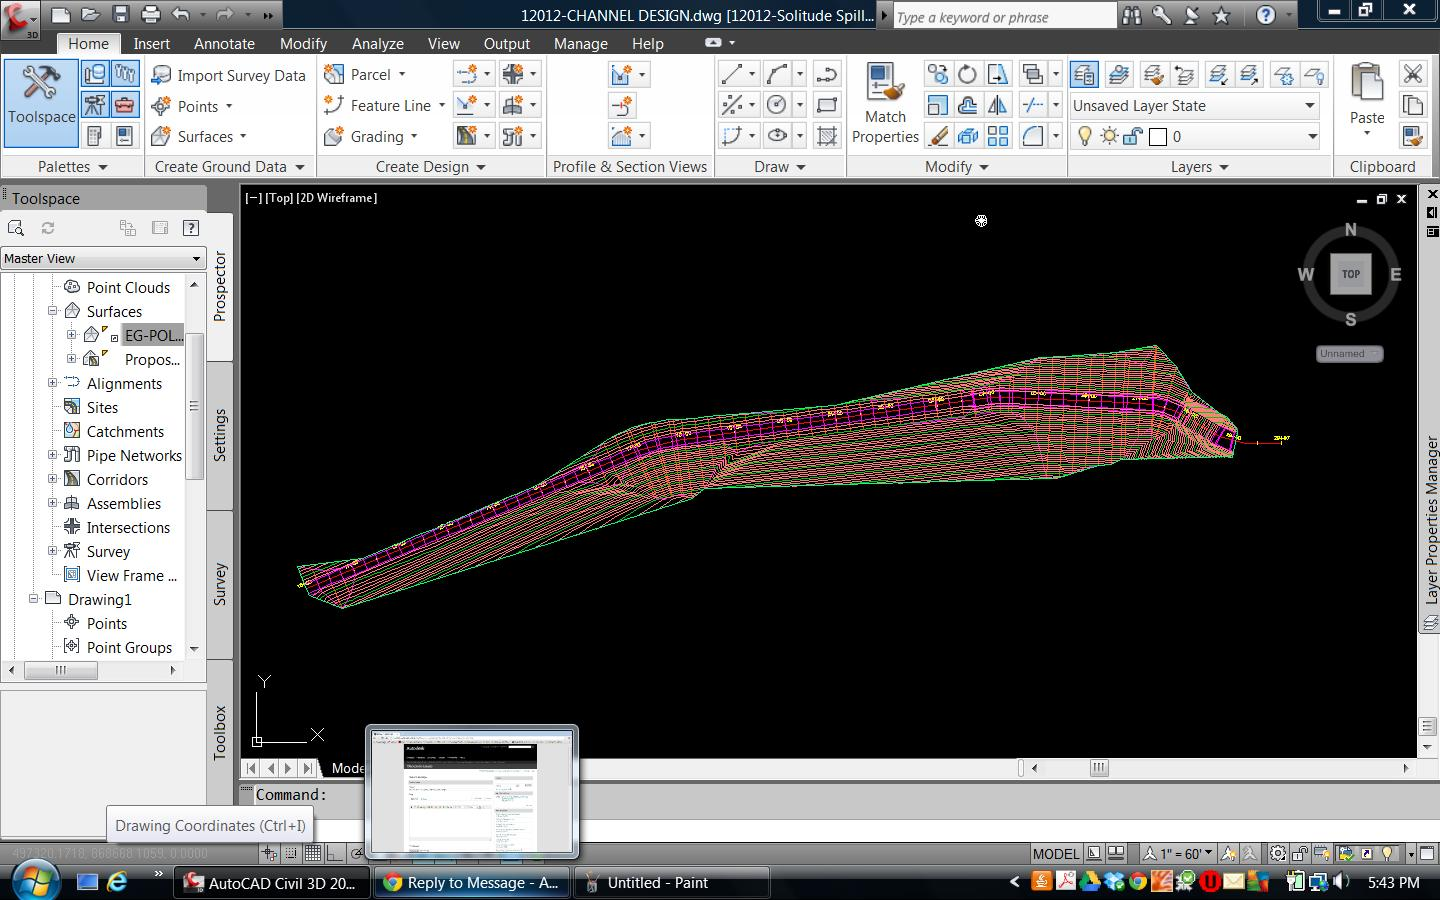 New to civil 3D modeling  Help with channel design - Autodesk